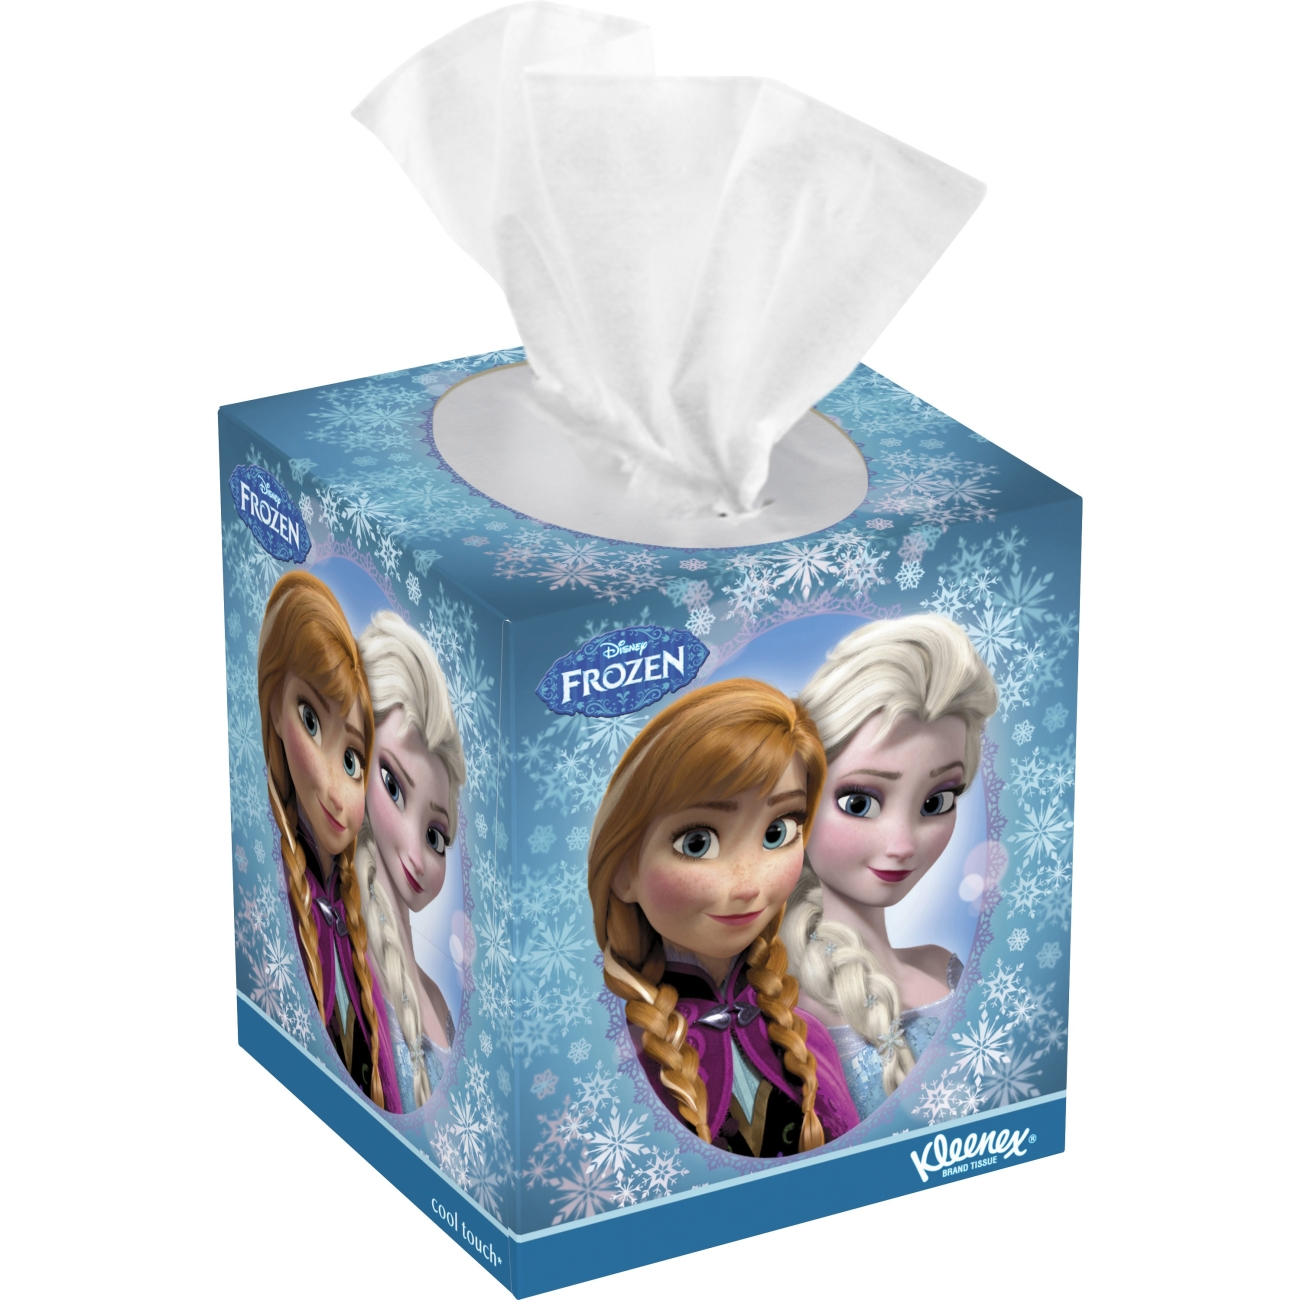 Kleenex Cool Touch Facial Tissue (29388bx)